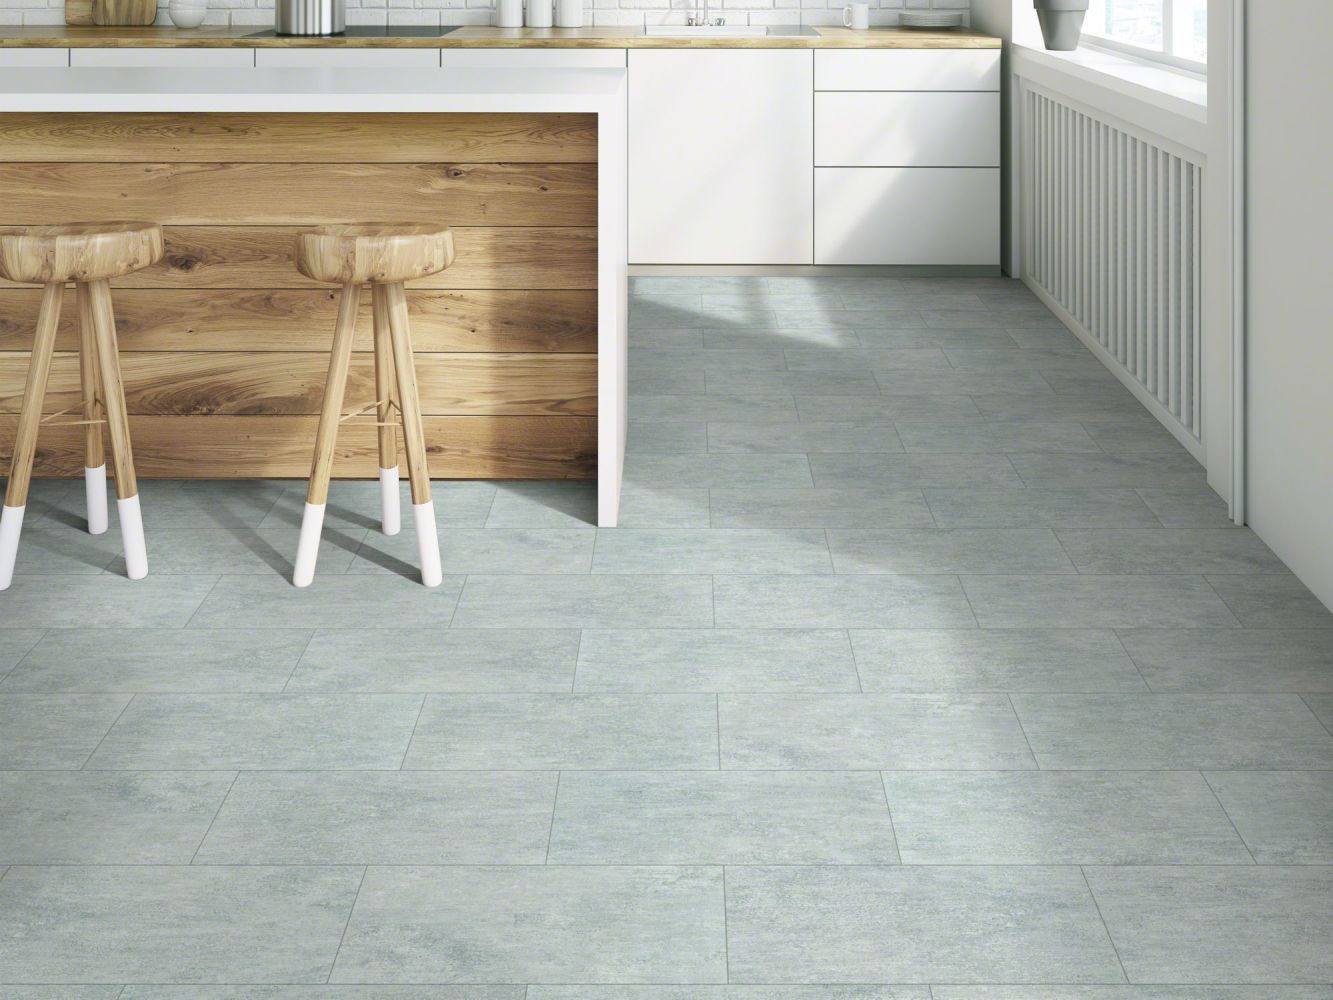 Shaw Floors Resilient Residential Mineral Mix 720c Plus Pebble 00599_0835V